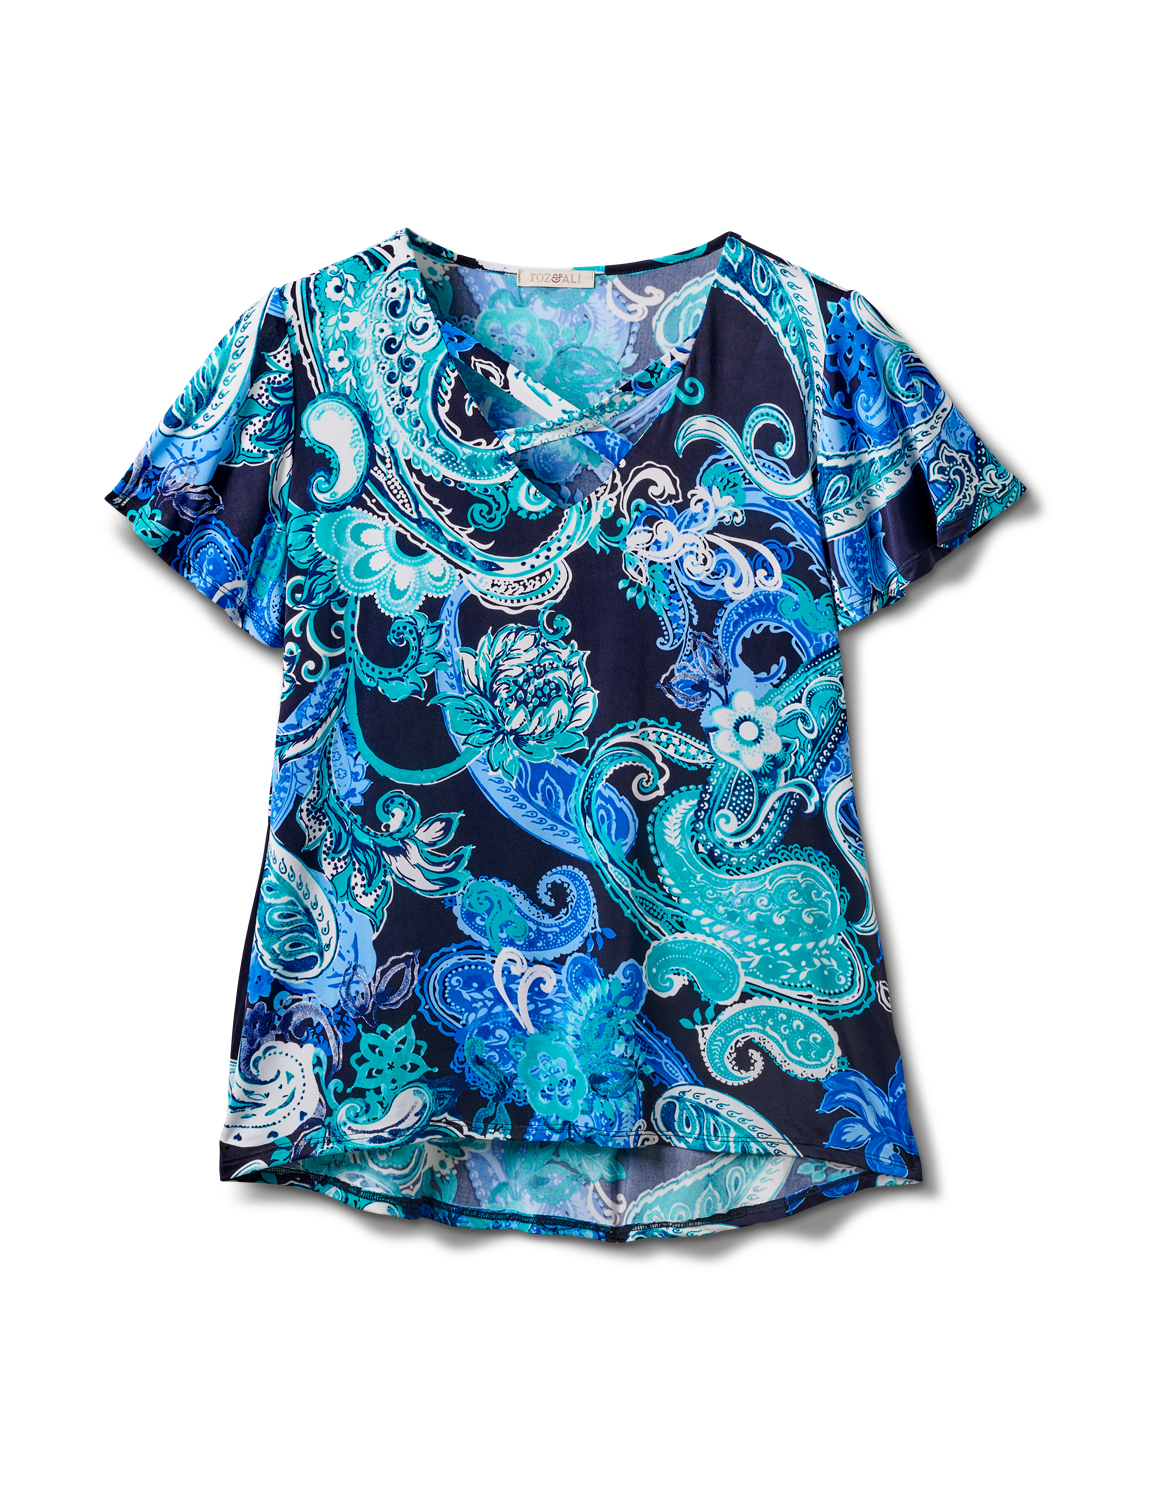 Criss Cross Neck Paisley Knit Top - Misses -Navy - Front